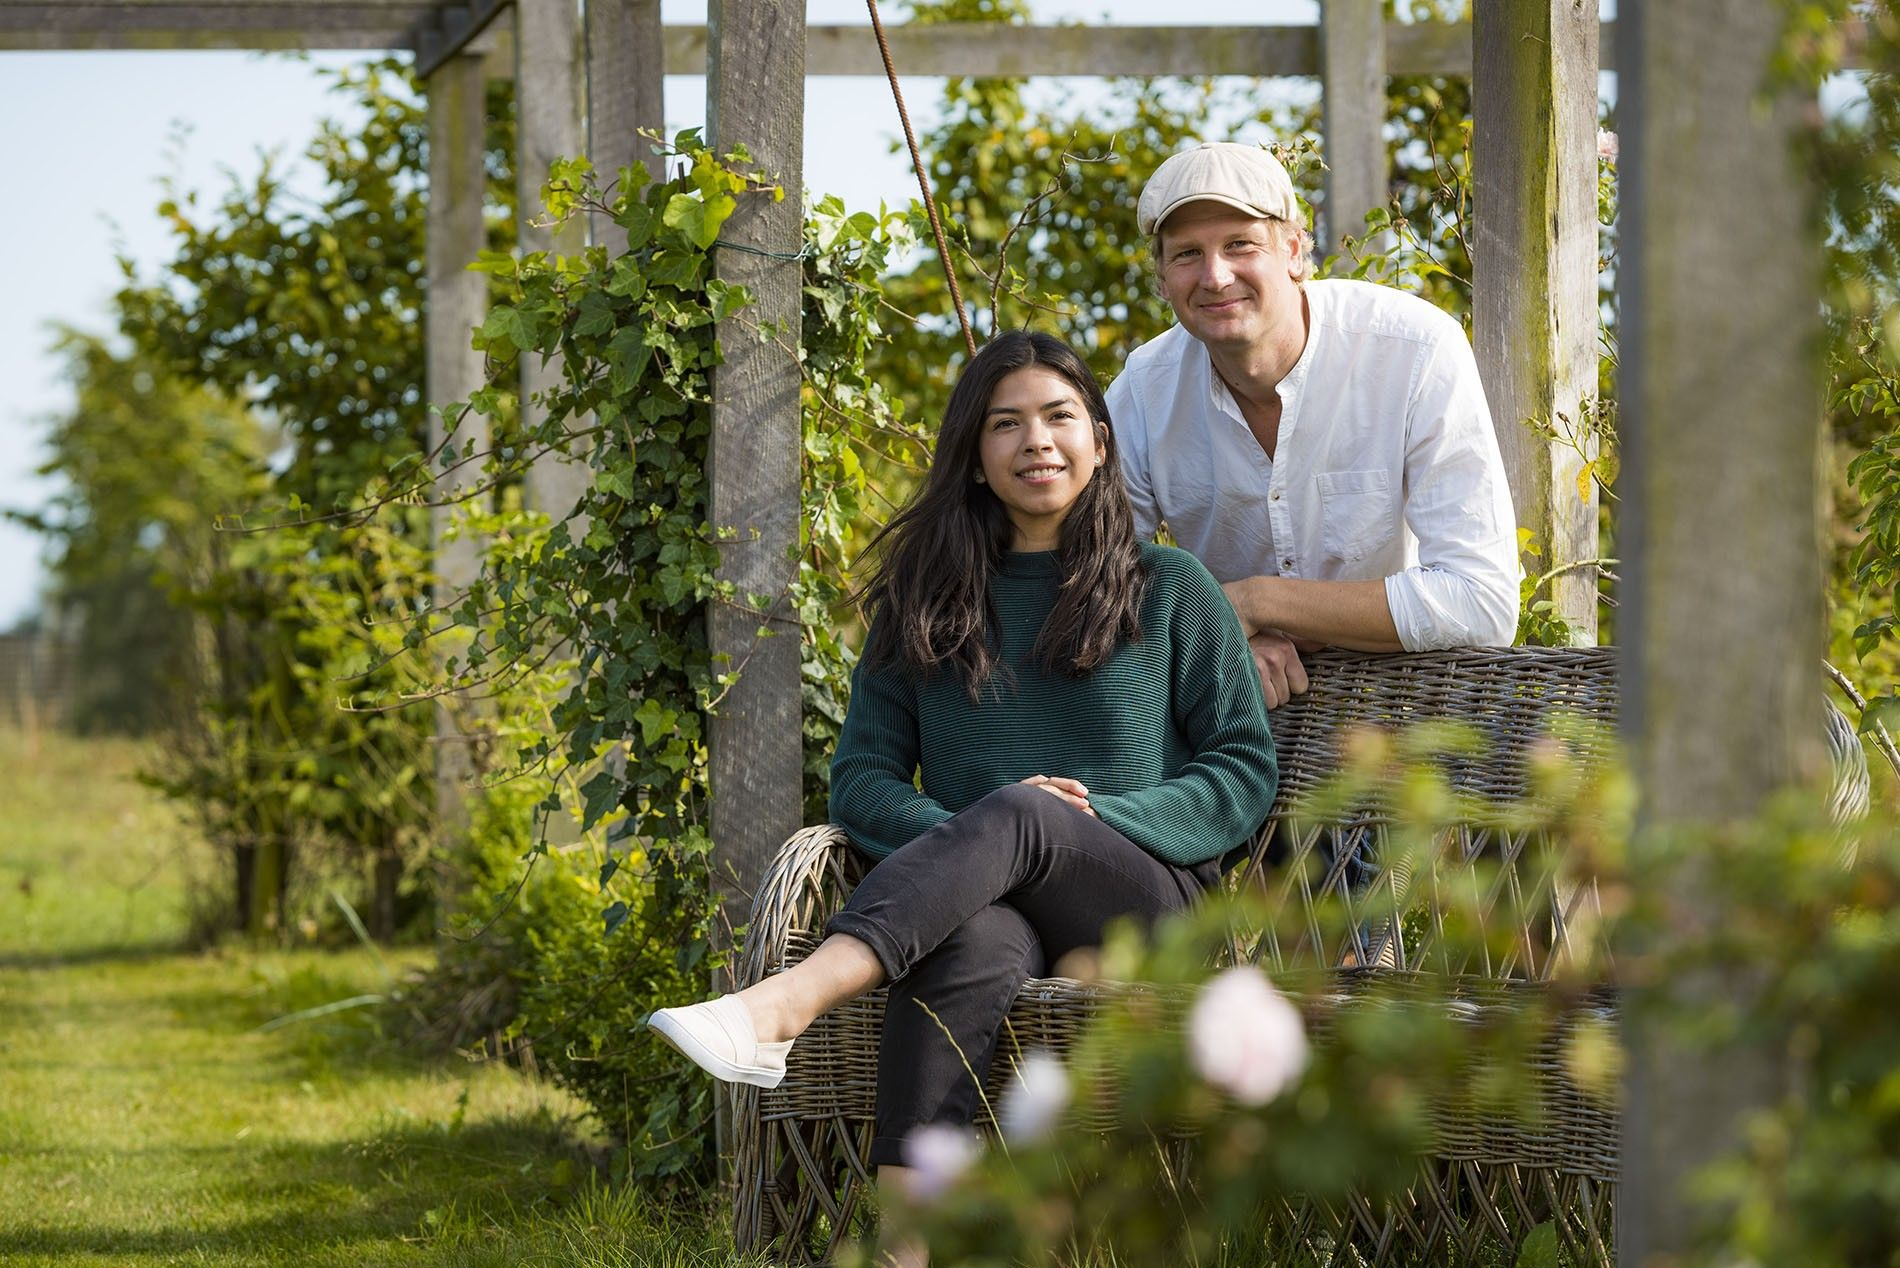 The flavours of Skåne: meet the people behind the produce